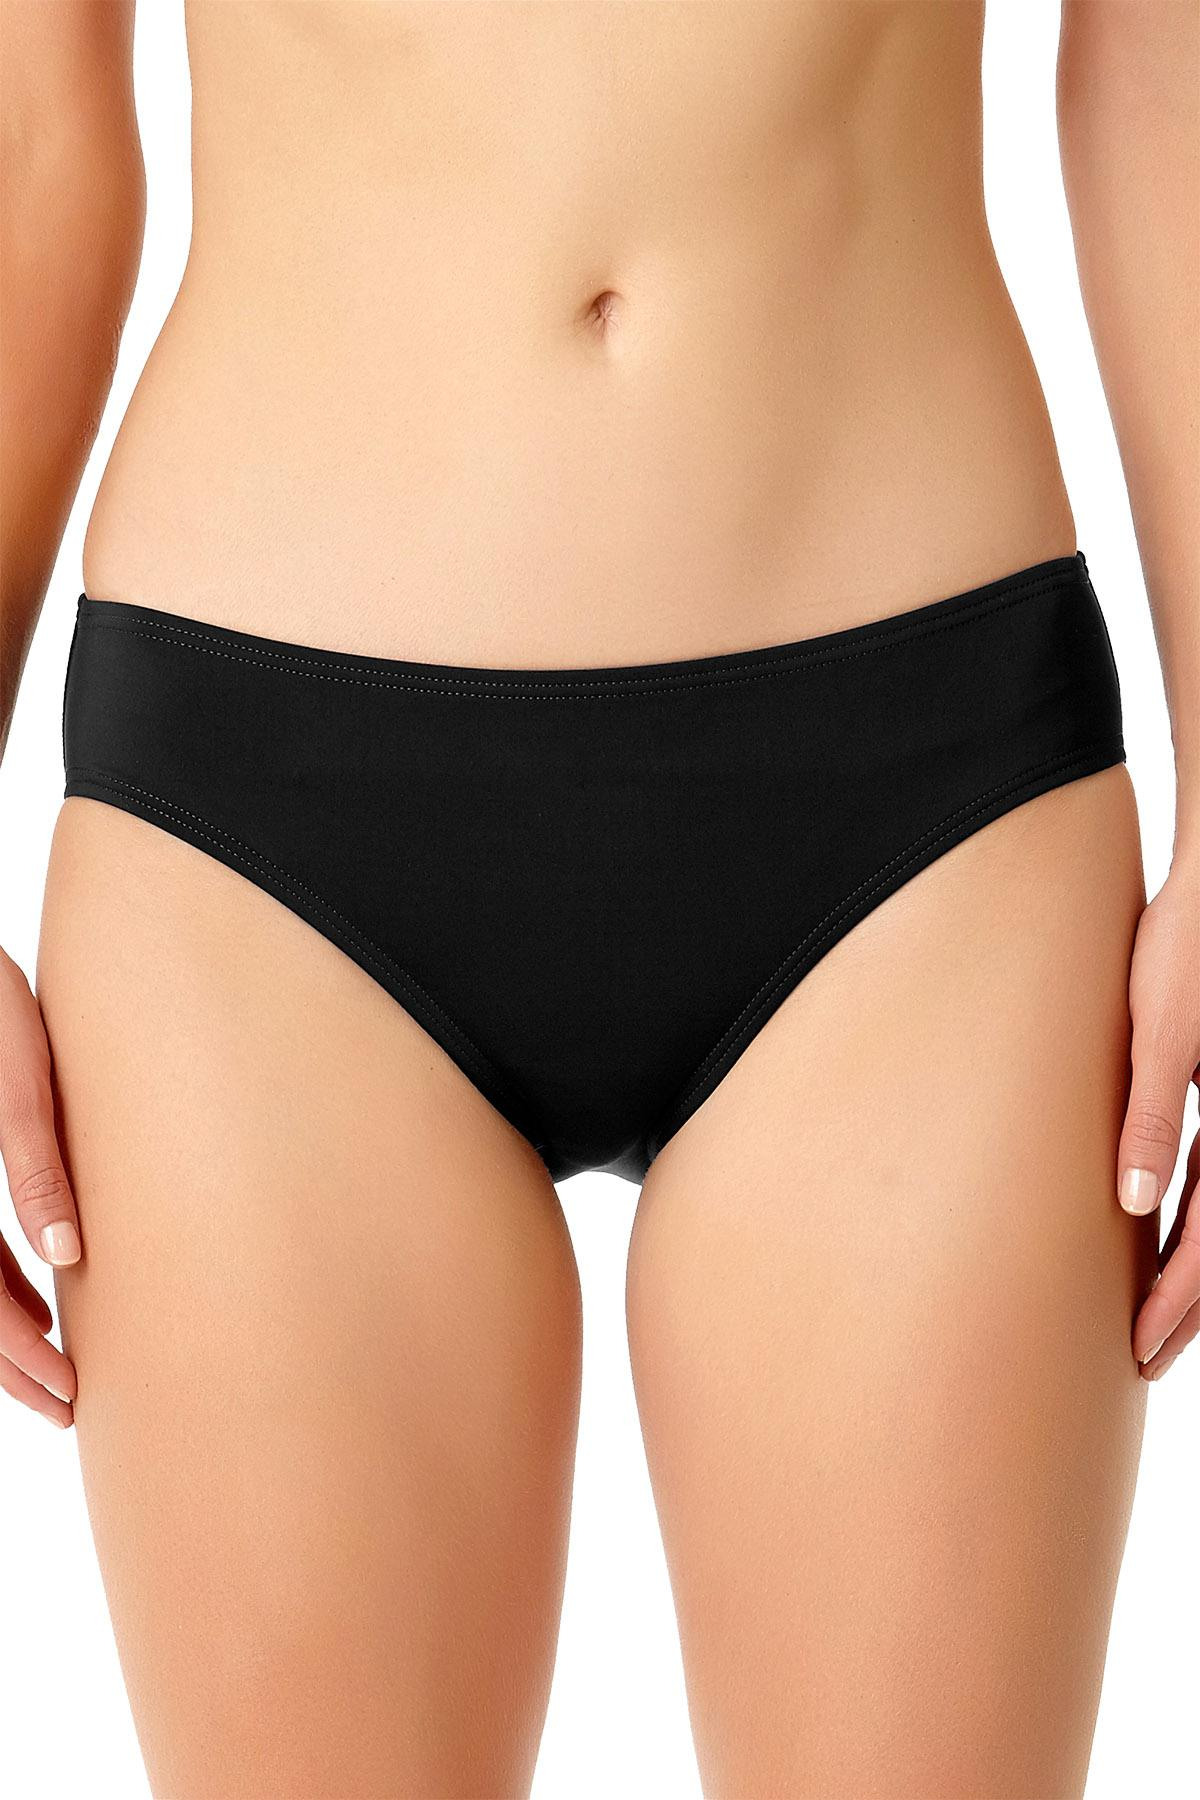 Anne Cole Black 'Live in Color' Retro Bikini Bottoms